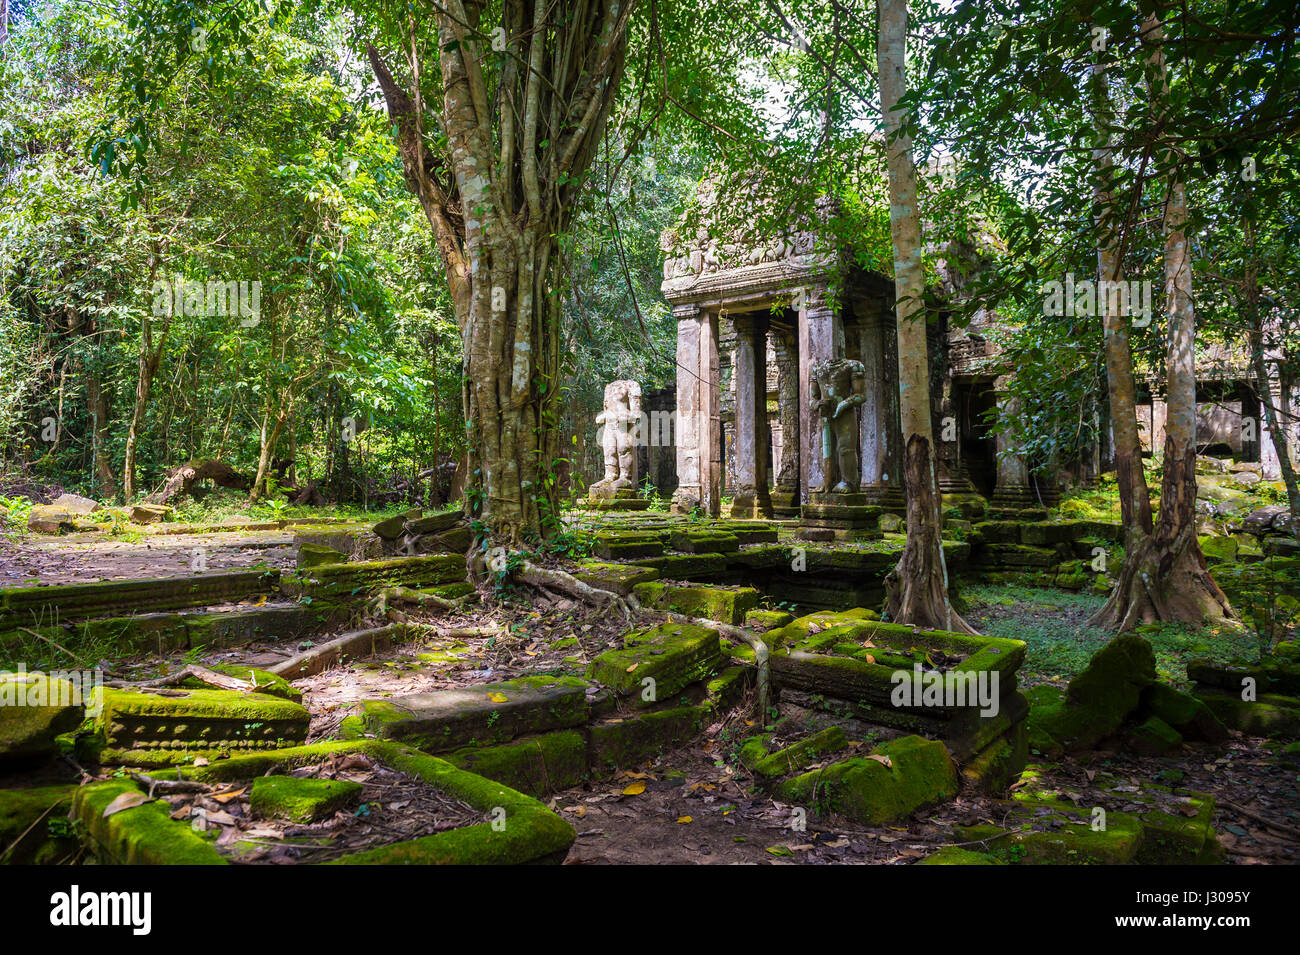 Vue panoramique sur la jungle de dépasser le complexe du temple de pierre d'Angkor Wat, au Cambodge Photo Stock